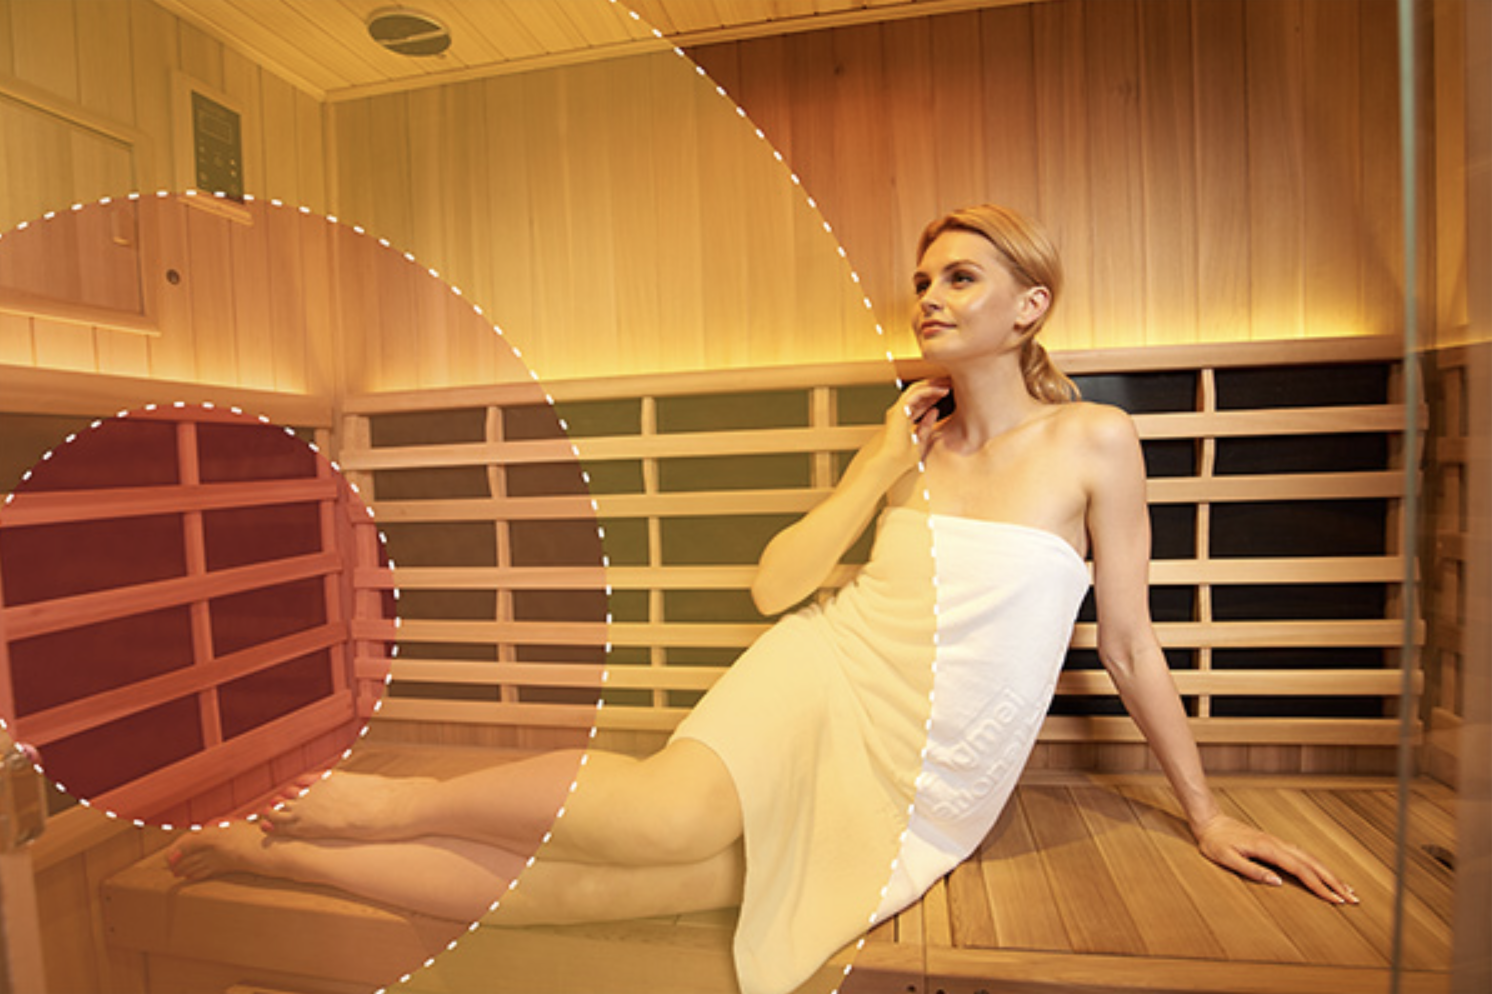 STRESS AND FATIGUE REDUCTION - Just a few minutes in the gentle warmth of an infrared sauna will help you feel relaxed, rejuvenated and renewed.Many Jacuzzi® Sauna customers comment on how much they look forward to their Clearlight Infrared Sauna™ session, as it's a great time to get away and release any built-up tension and stress. It's like having a day spa in your home, open all the time for your convenience.Infrared Saunas have also been shown to affect the autonomic nervous system putting you in the parasympathetic (rest and digest) state allowing your body to heal.